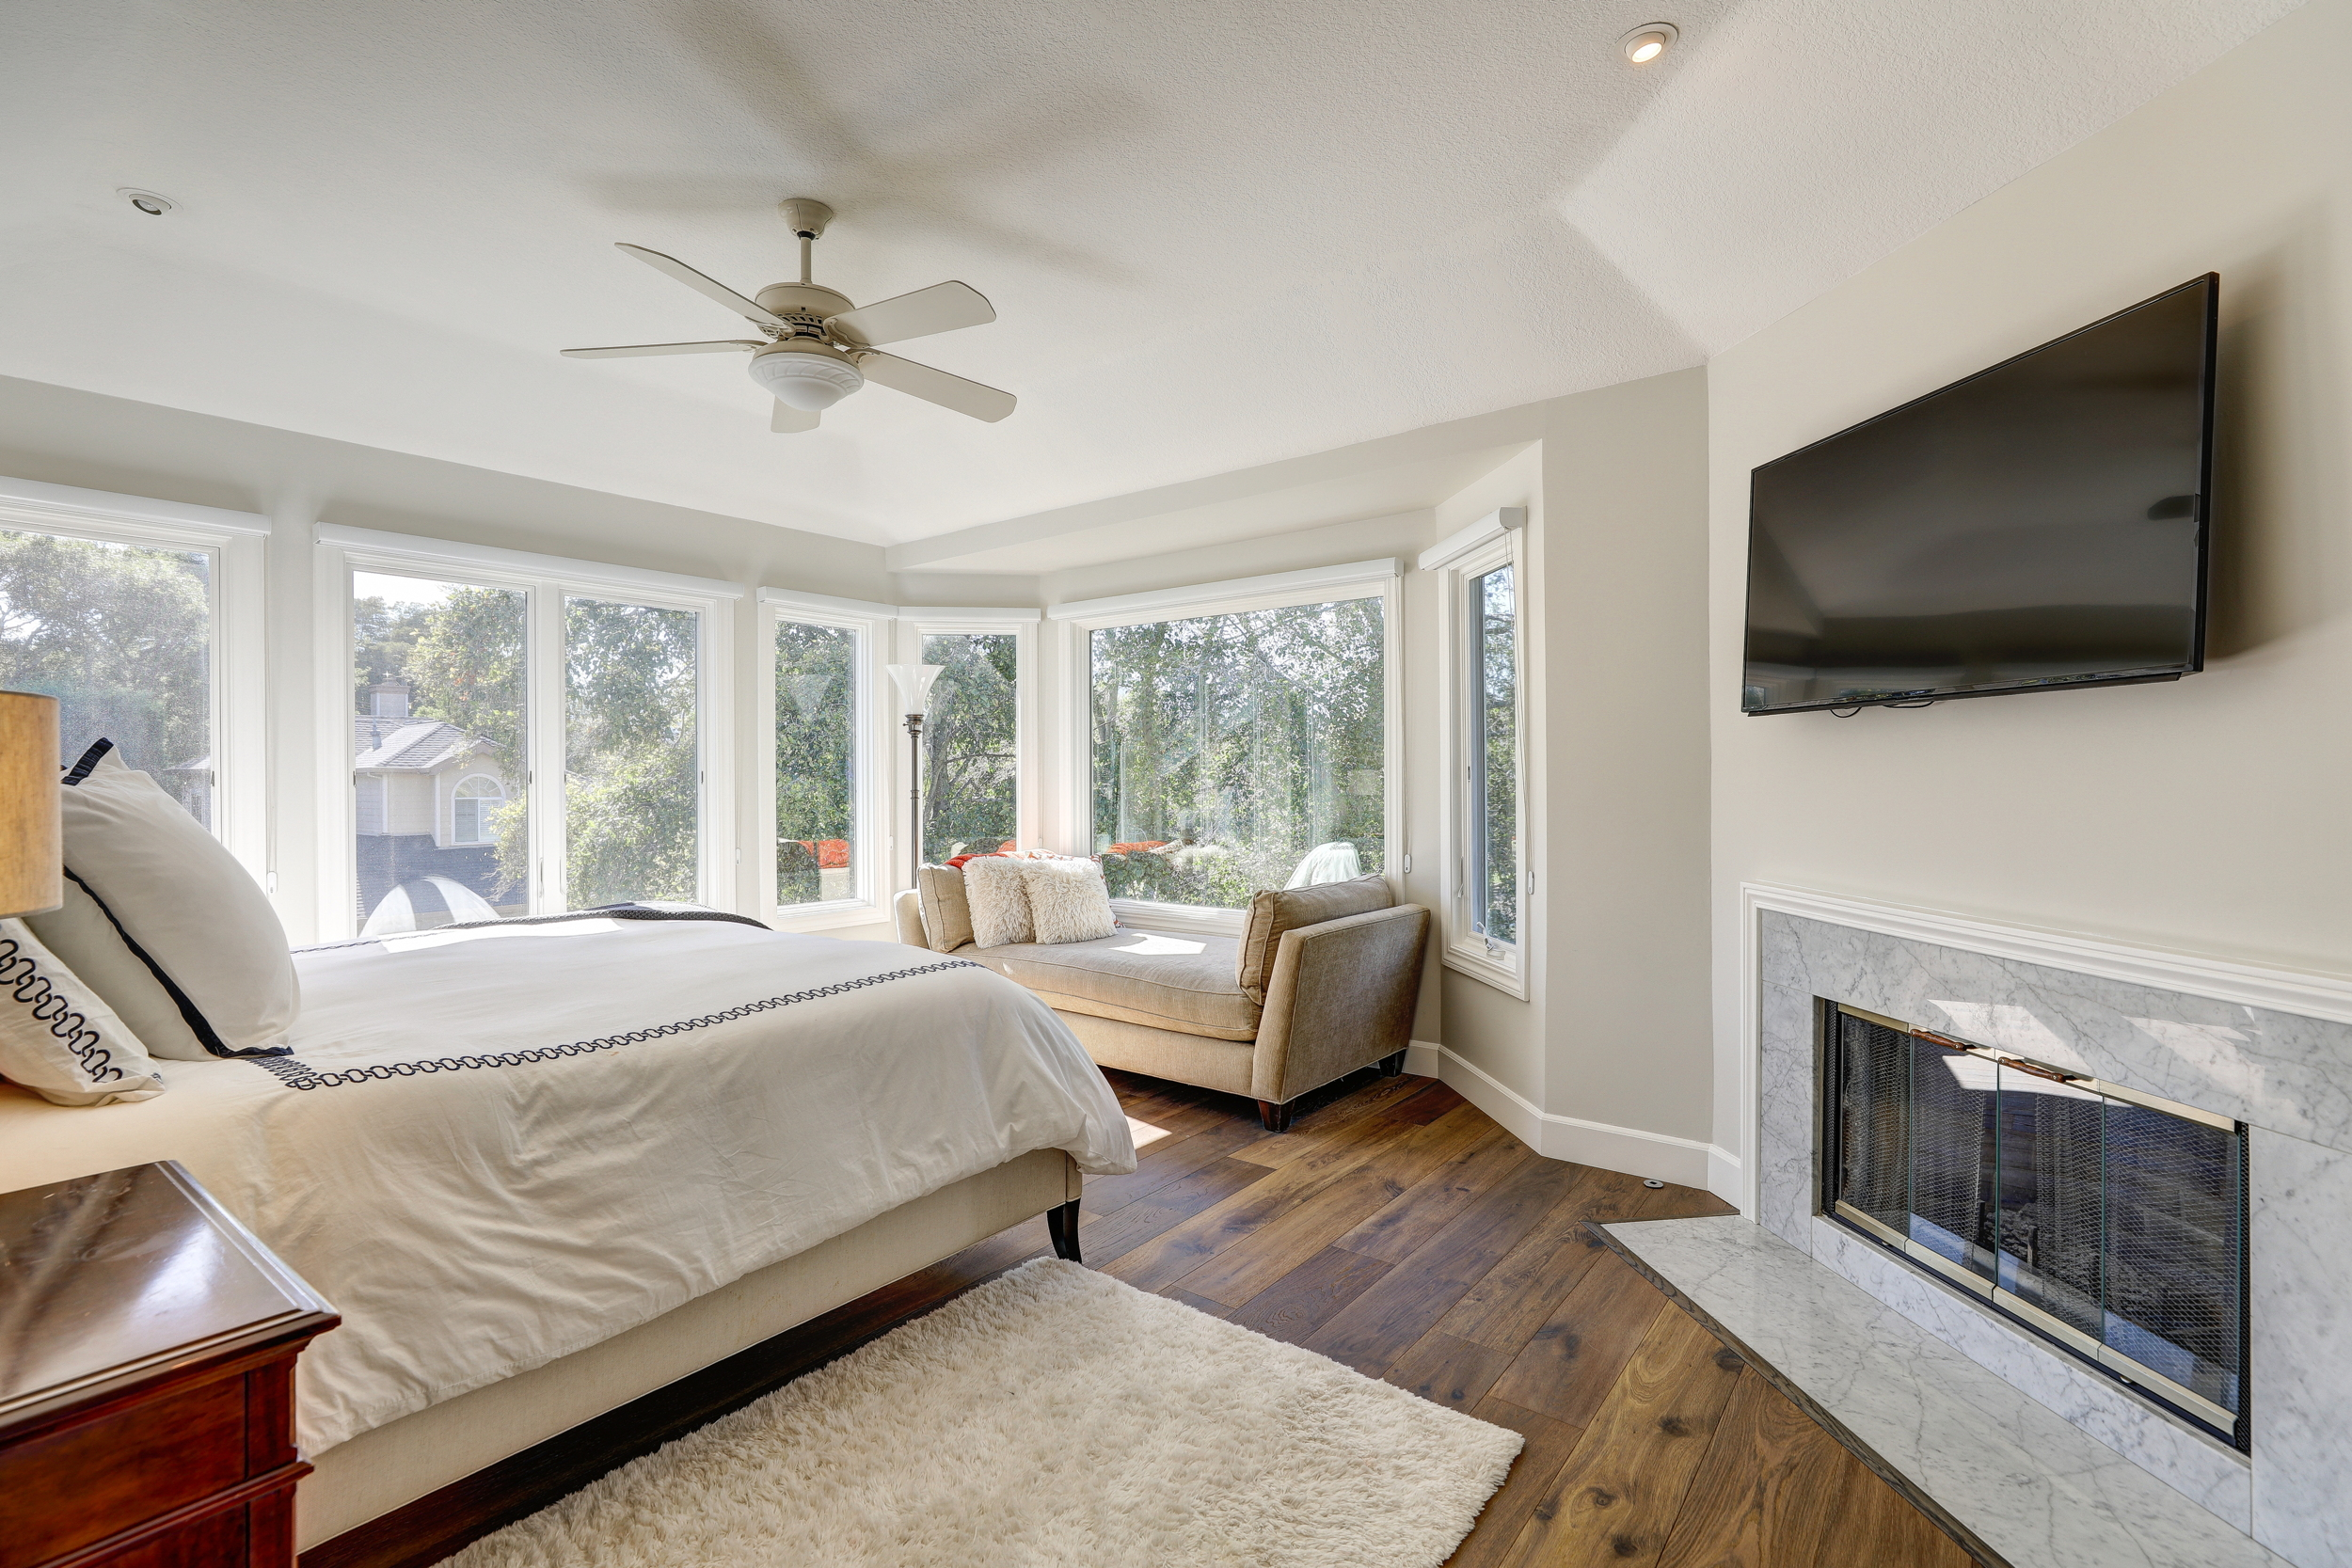 8Parkside 50 - Own Marin with Compass - Marin County Best Realtor.jpg